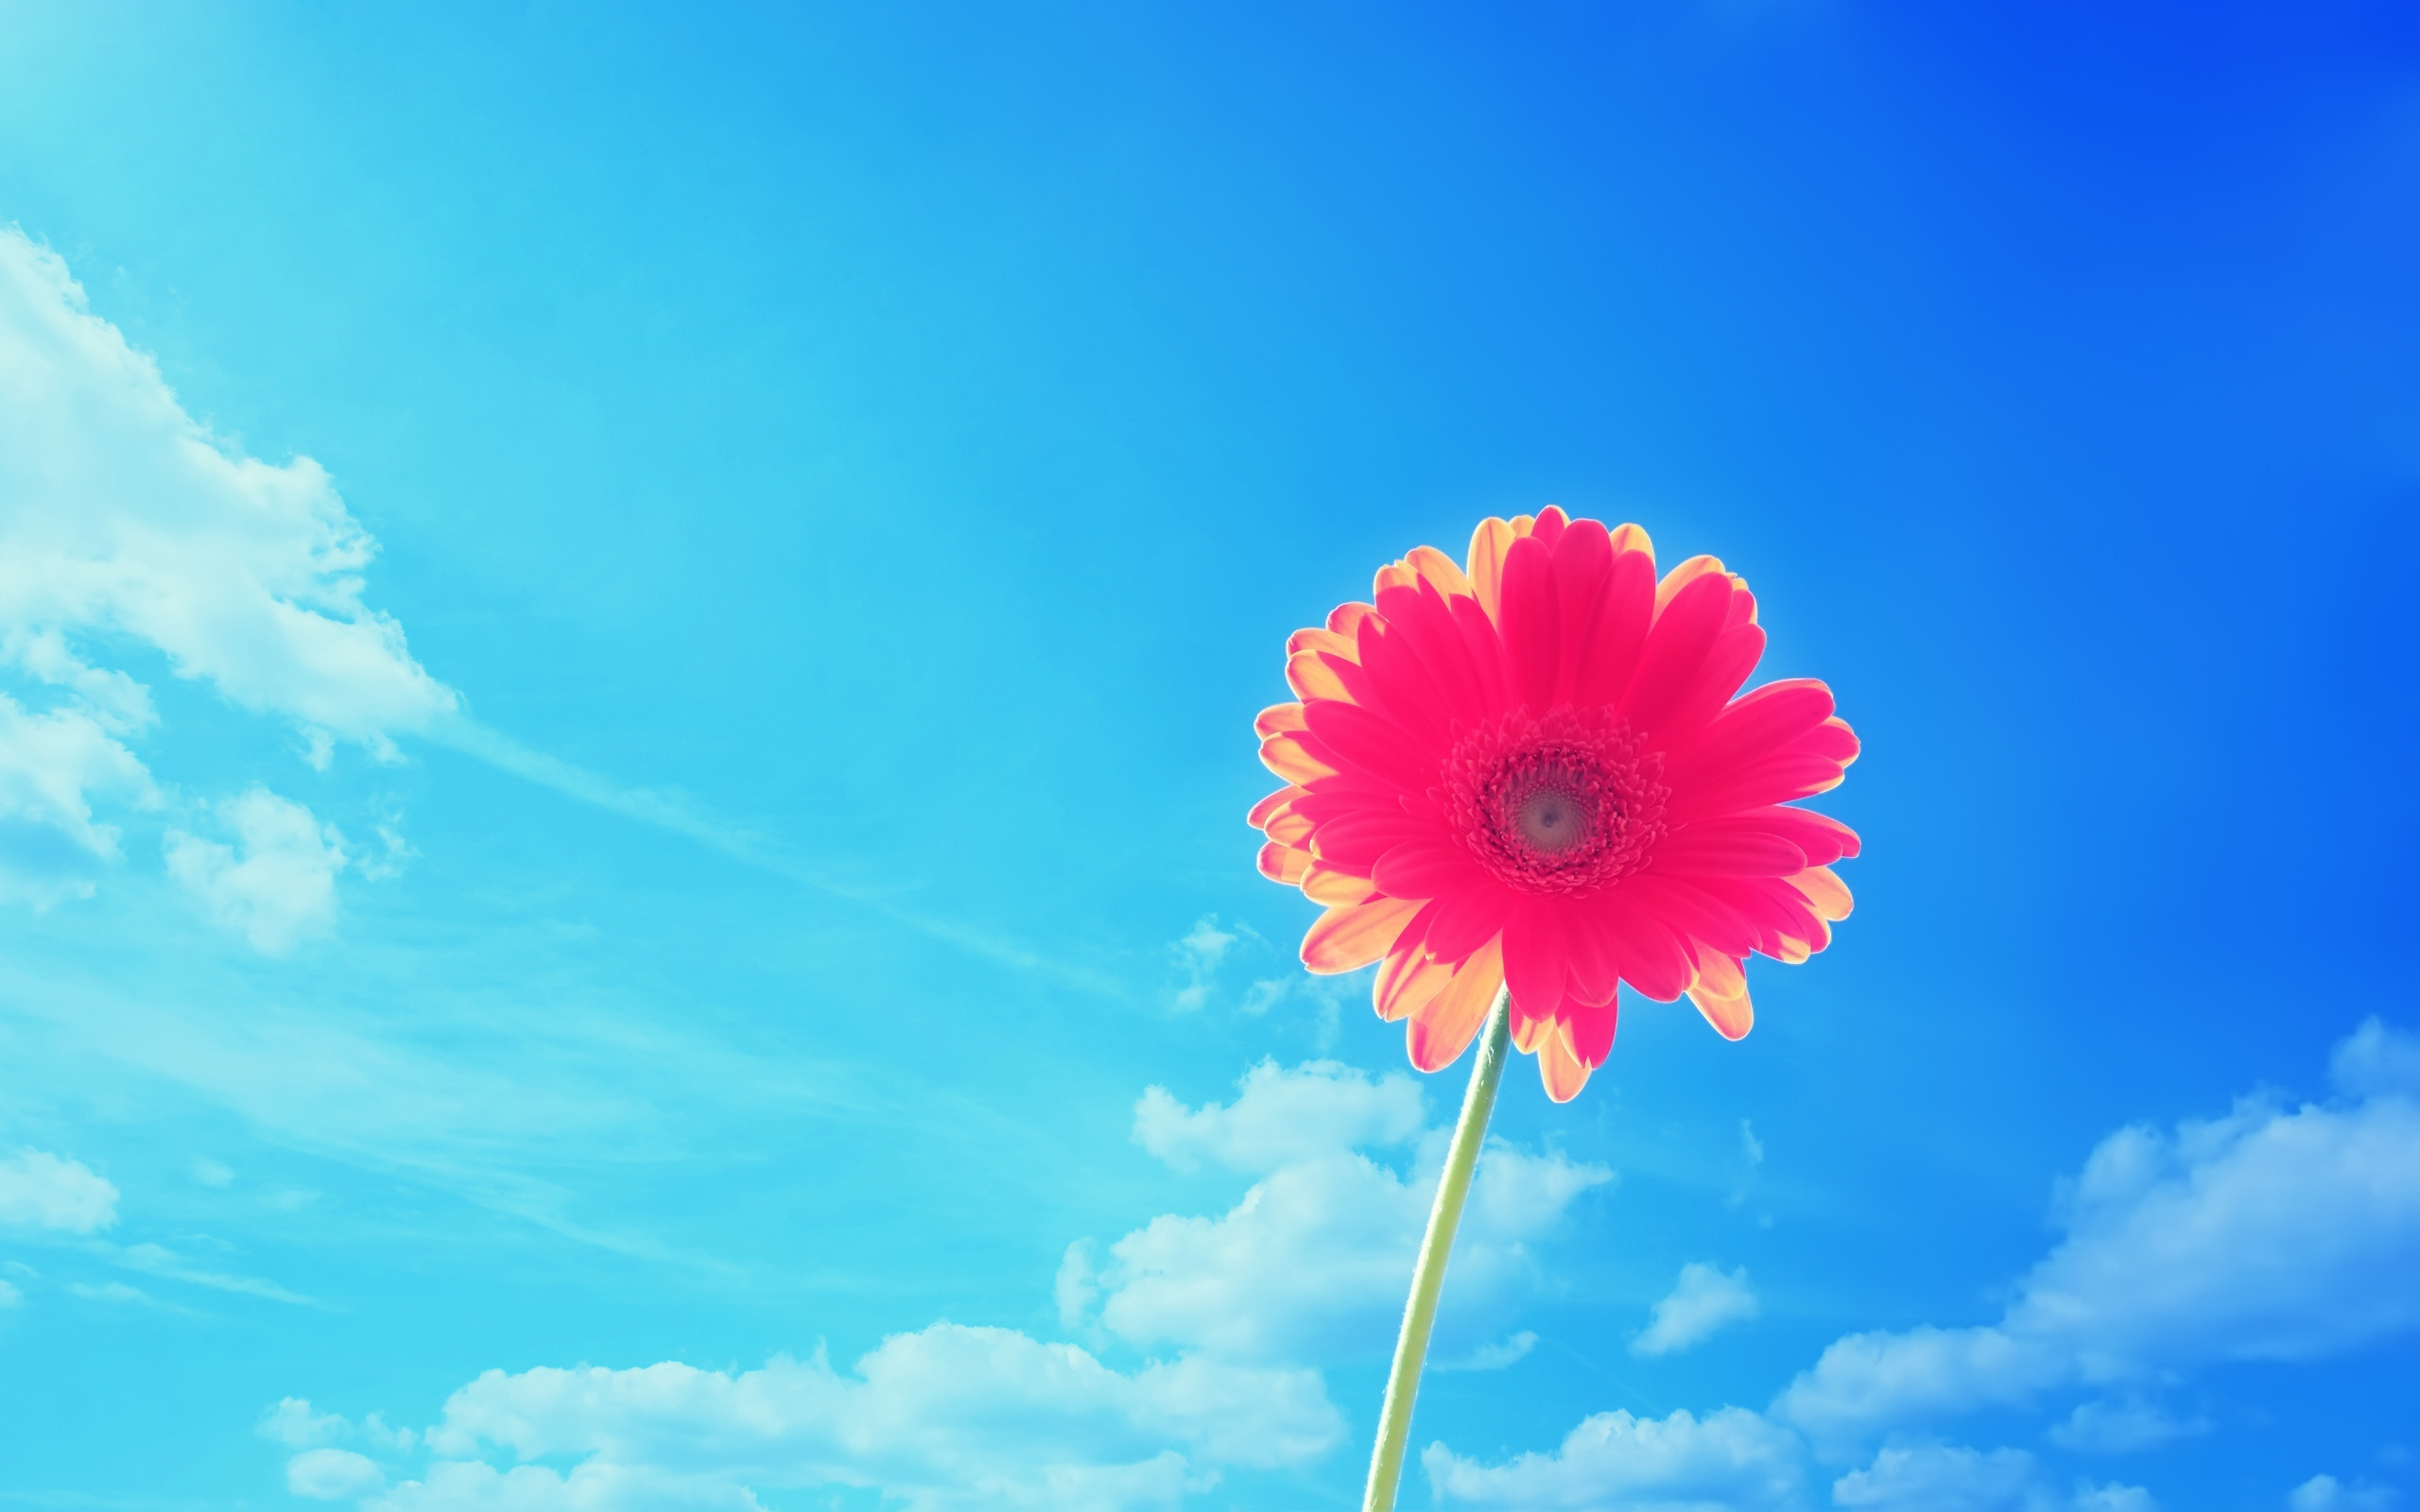 original wallpaper download: Bright flower - 2560x1600